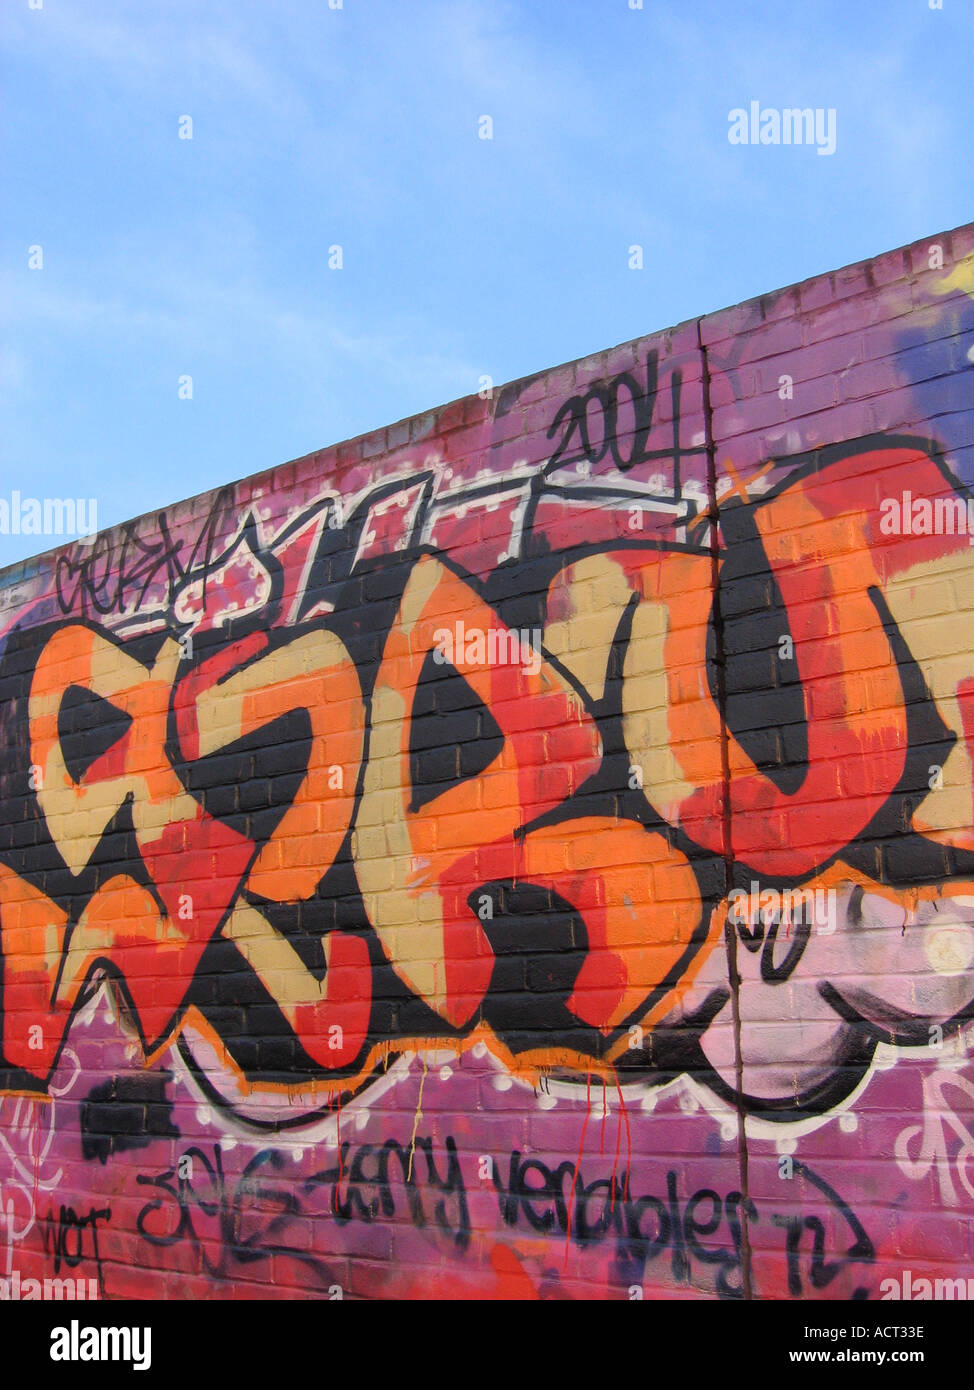 orange and red graffitti on a brick wall with blue sky behind - Stock Image